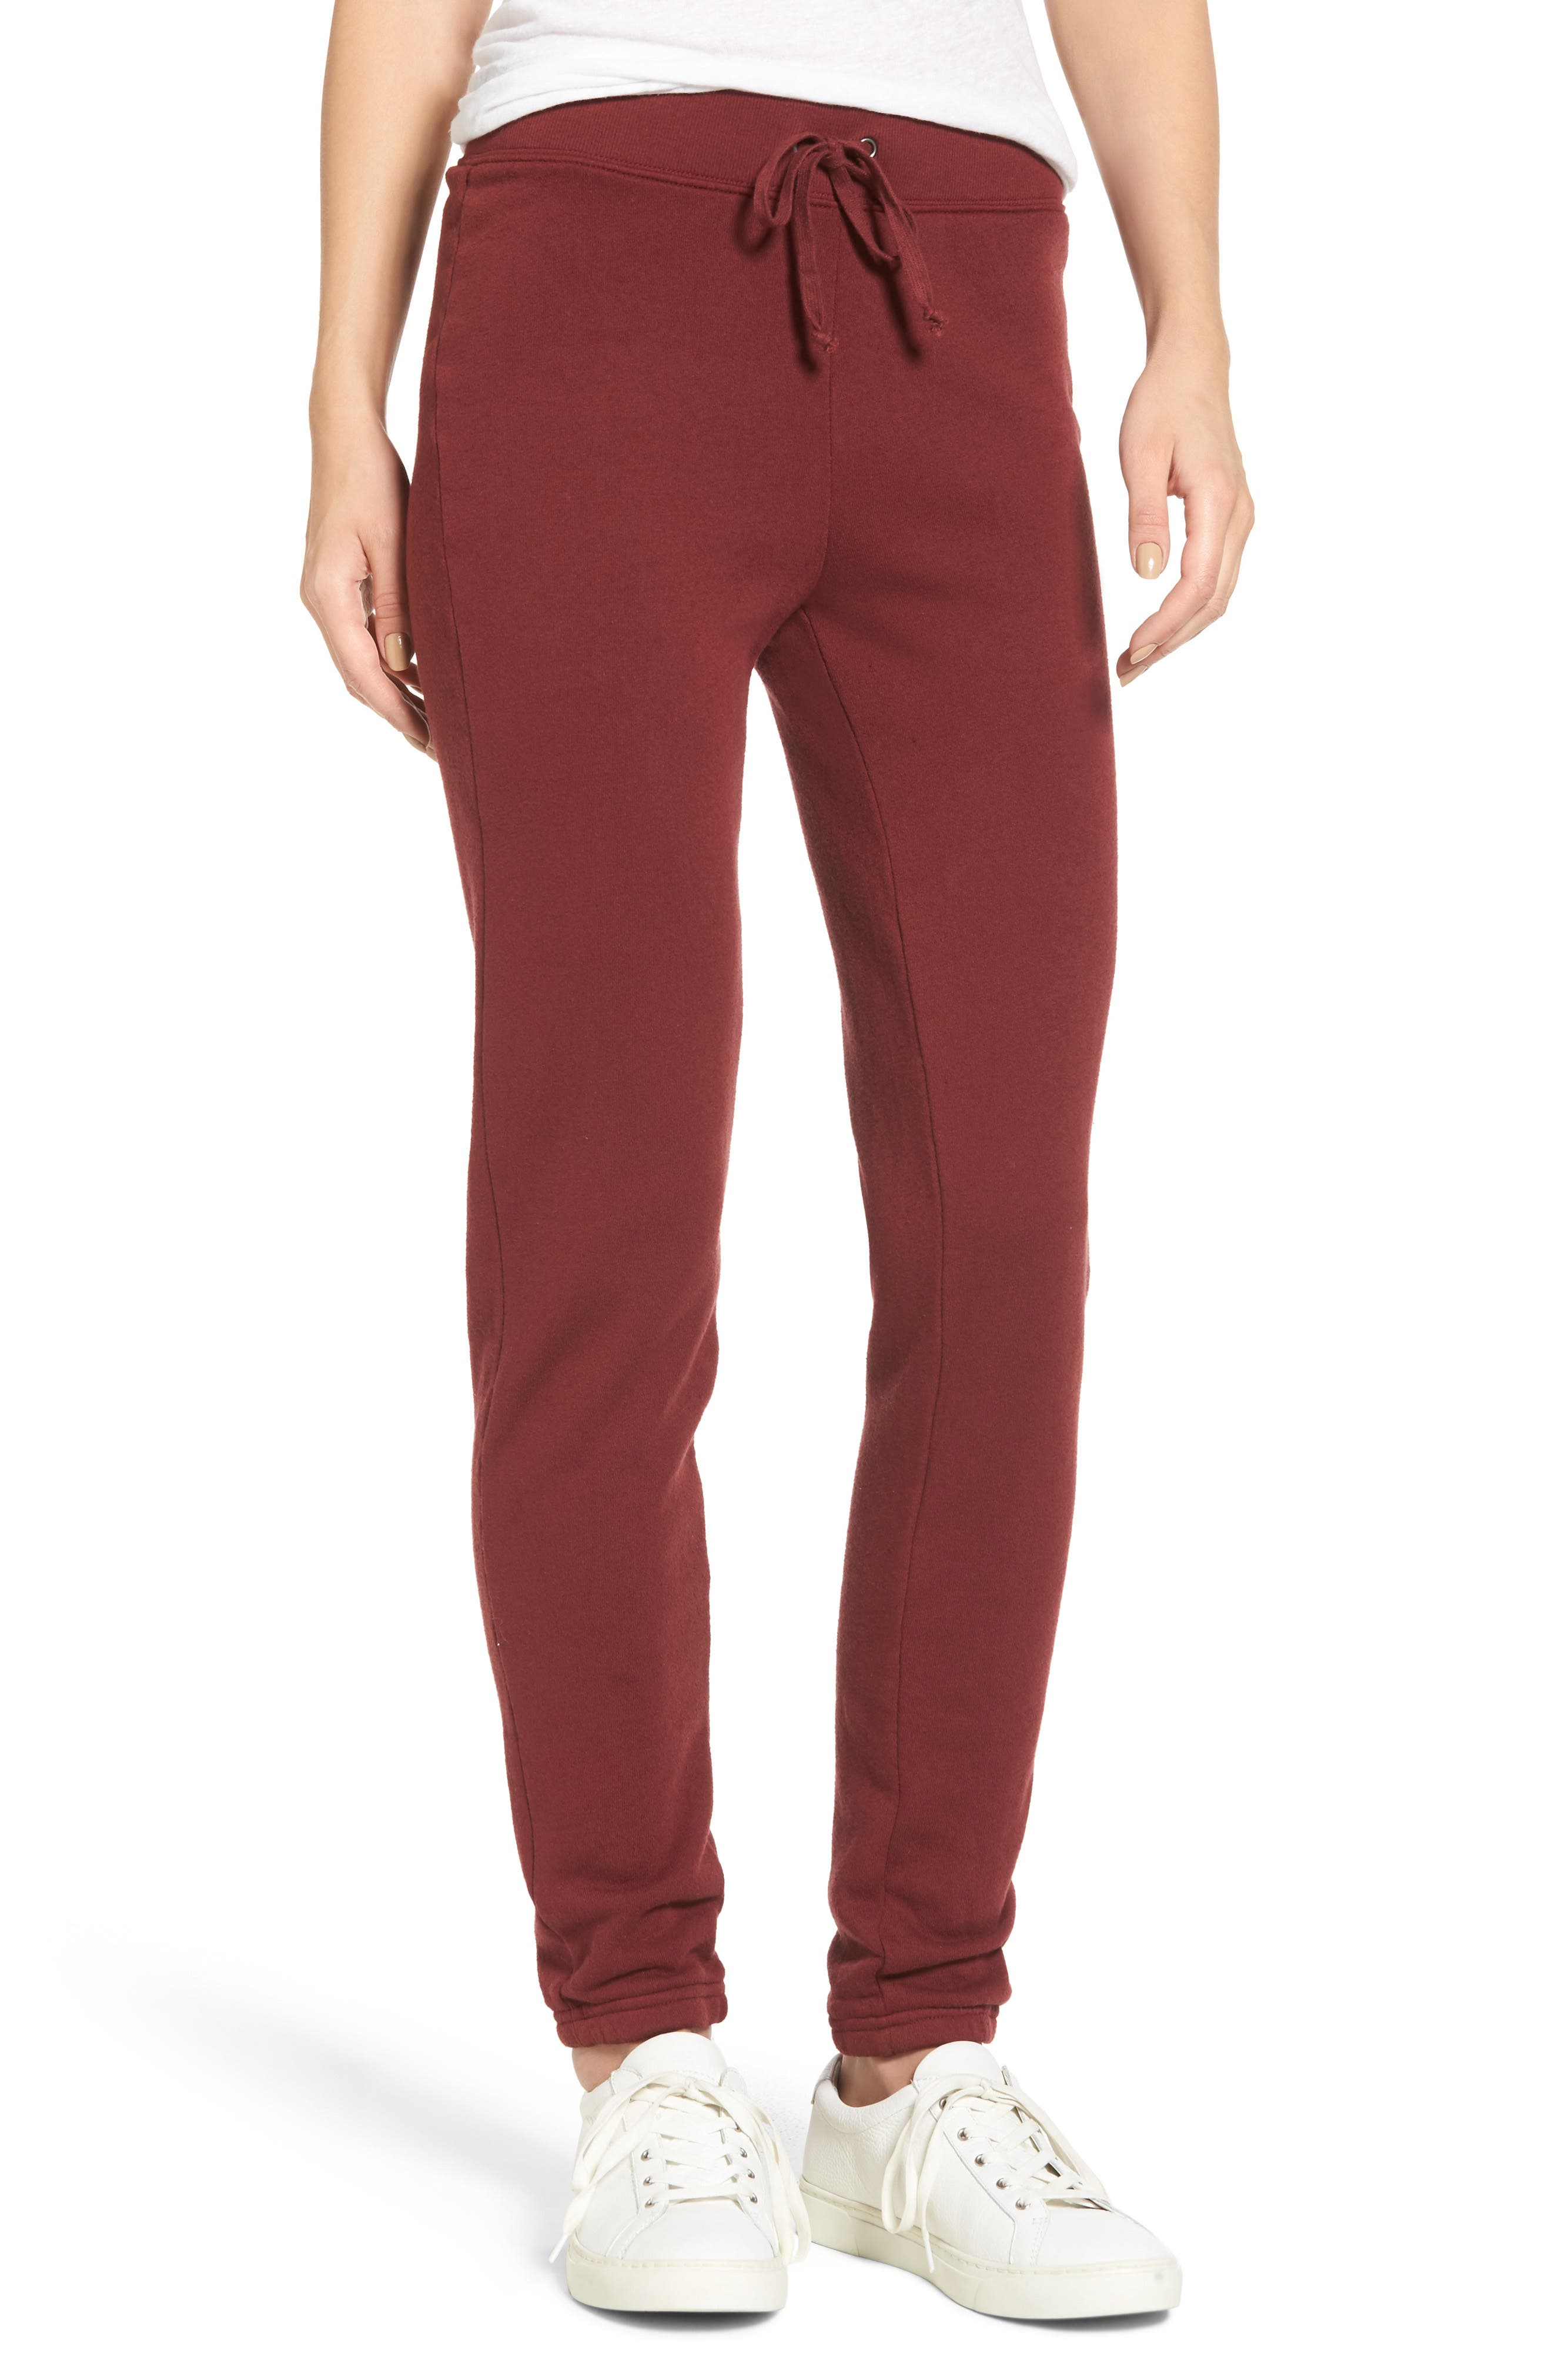 Main Image - Pam & Gela Fleece Sweatpants